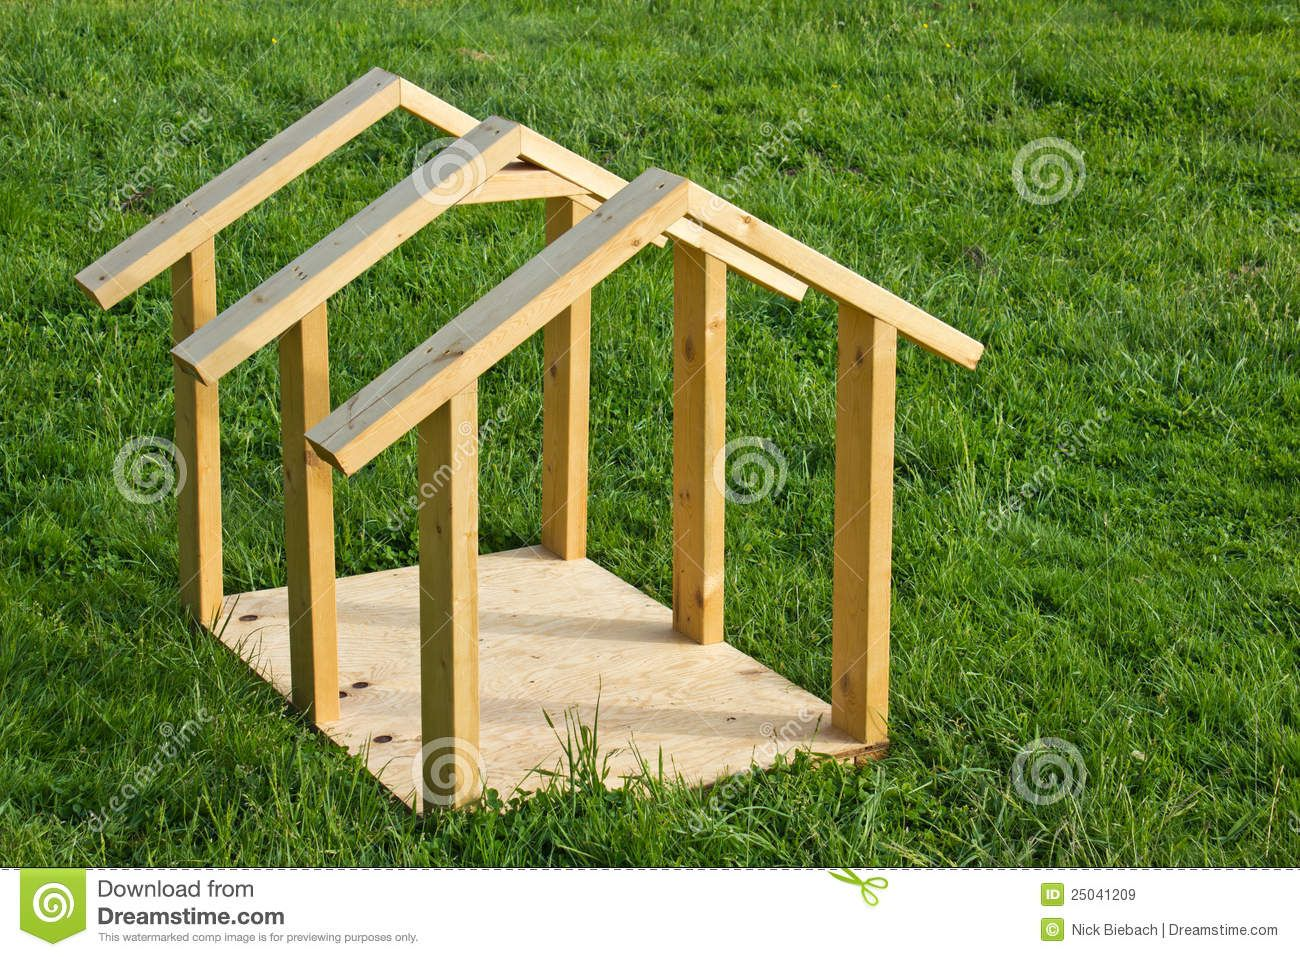 Free easy to build dog house plans for Make a house online